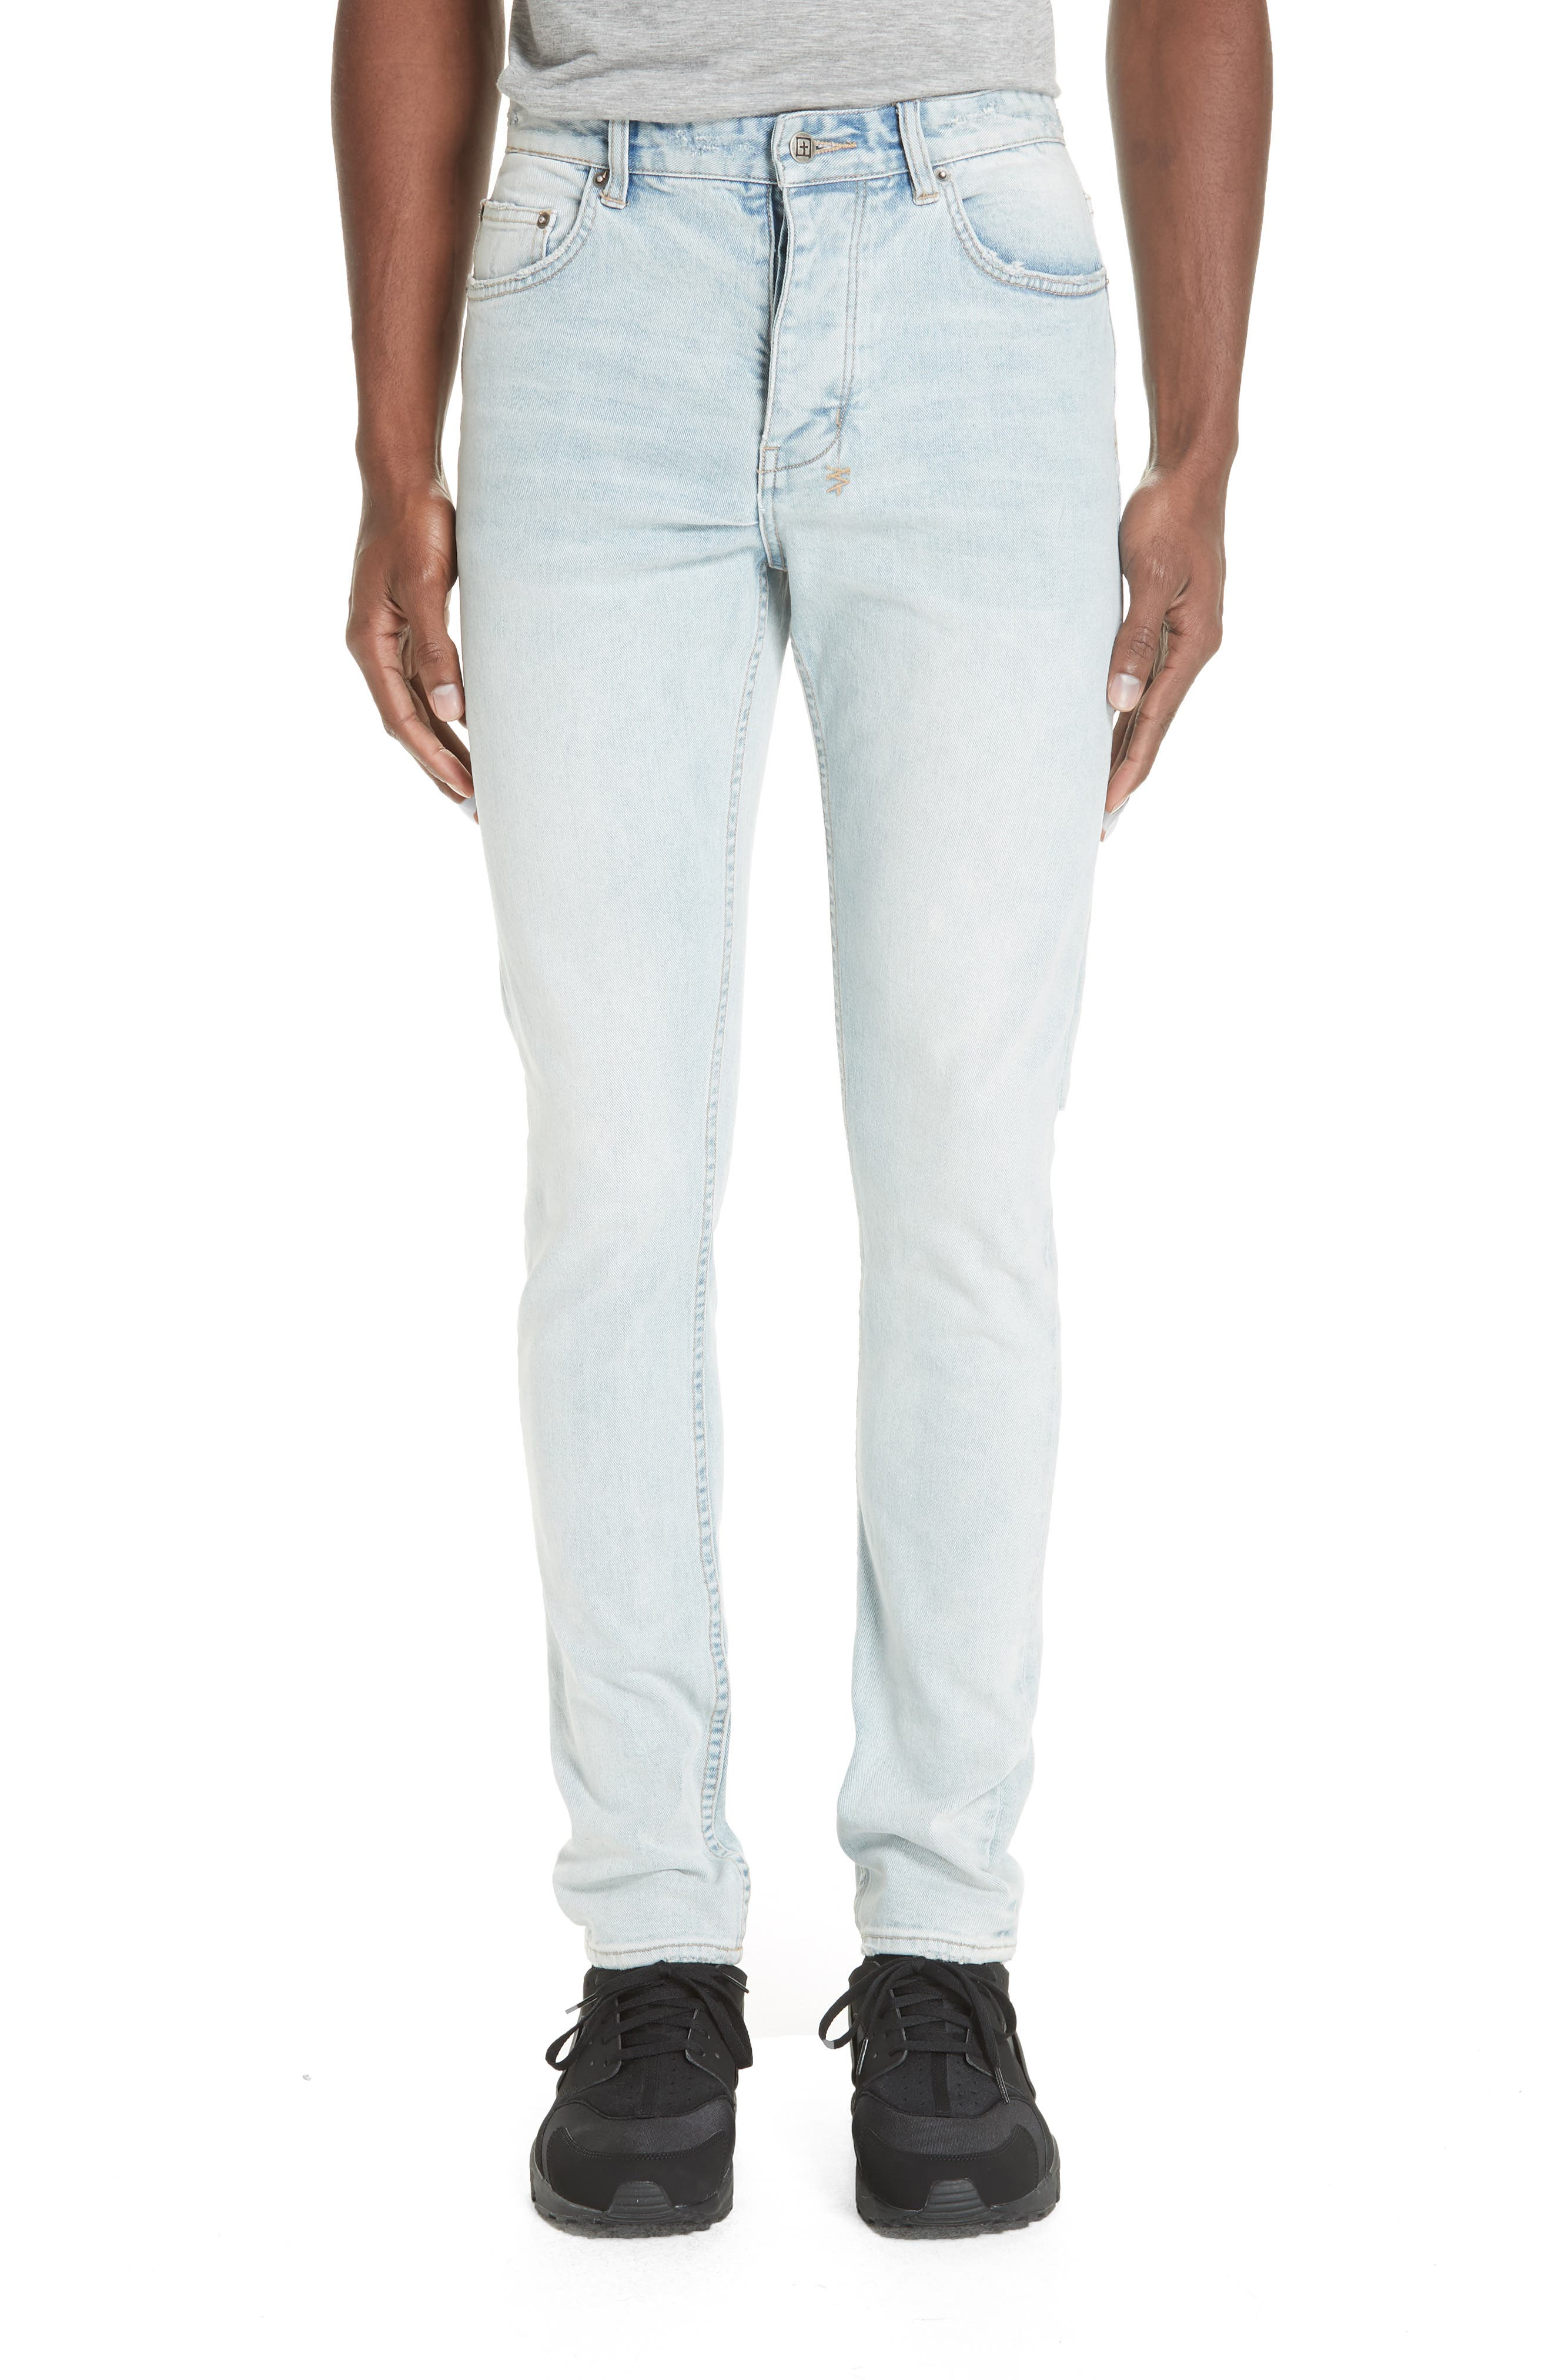 Chitch Chillz Skinny Fit Jeans,                             Main thumbnail 1, color,                             450